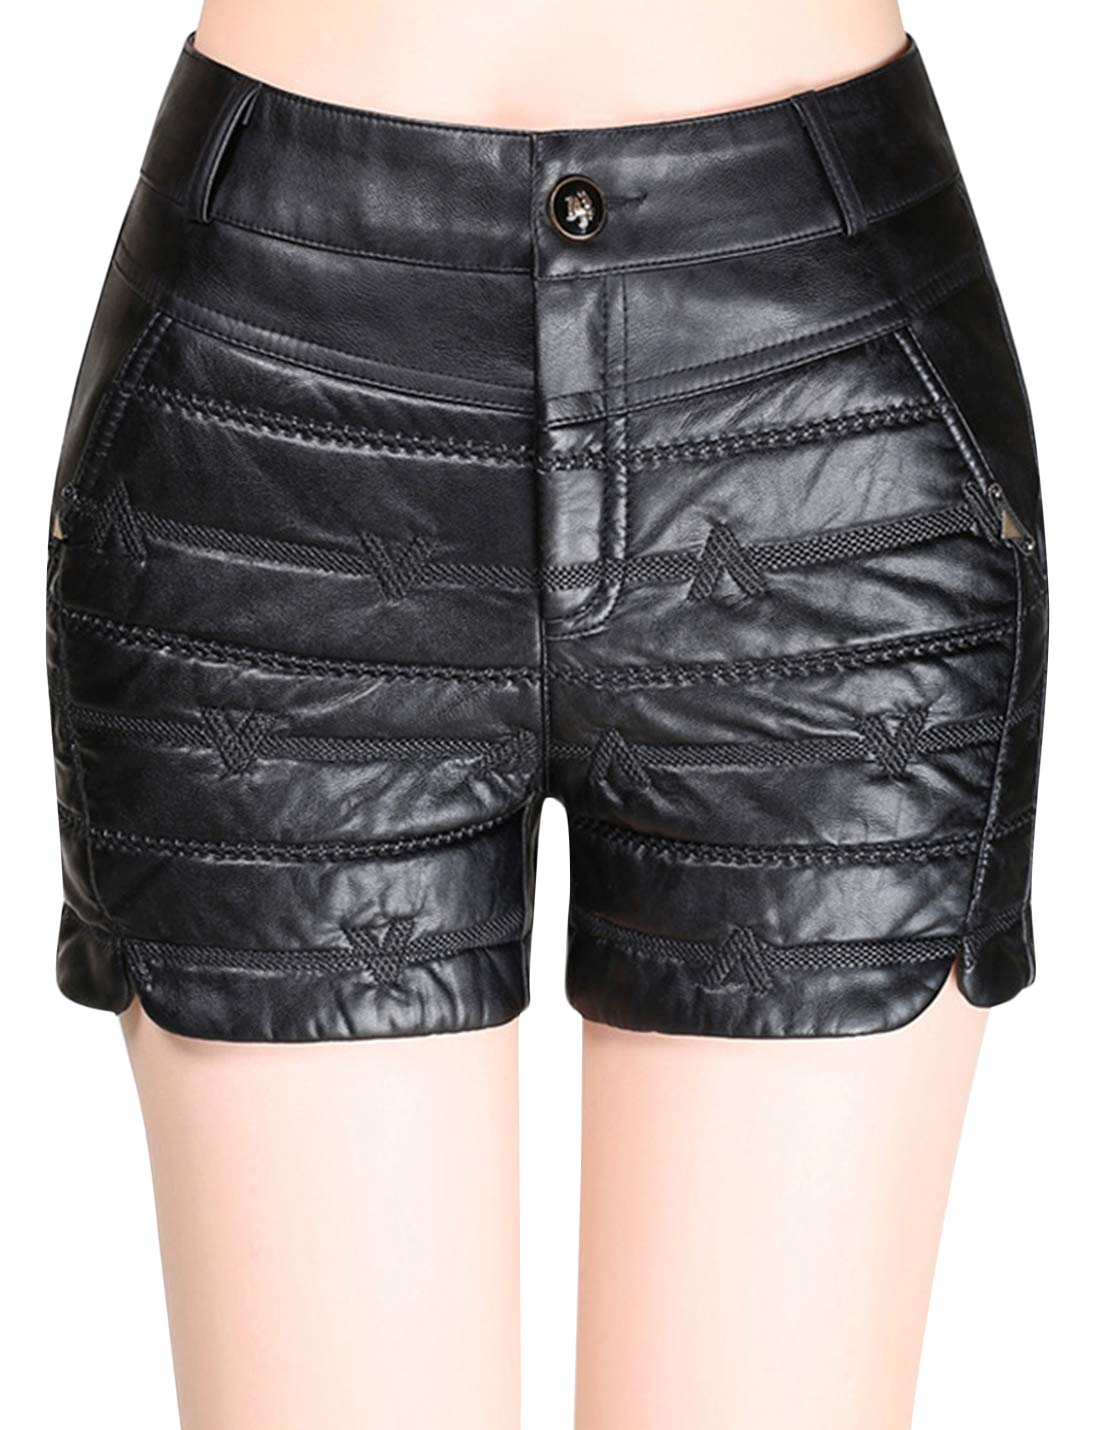 Uaneo Women's Basic Winter Thicken Quilted PU Faux Leather Shorts (X-Small, Black)